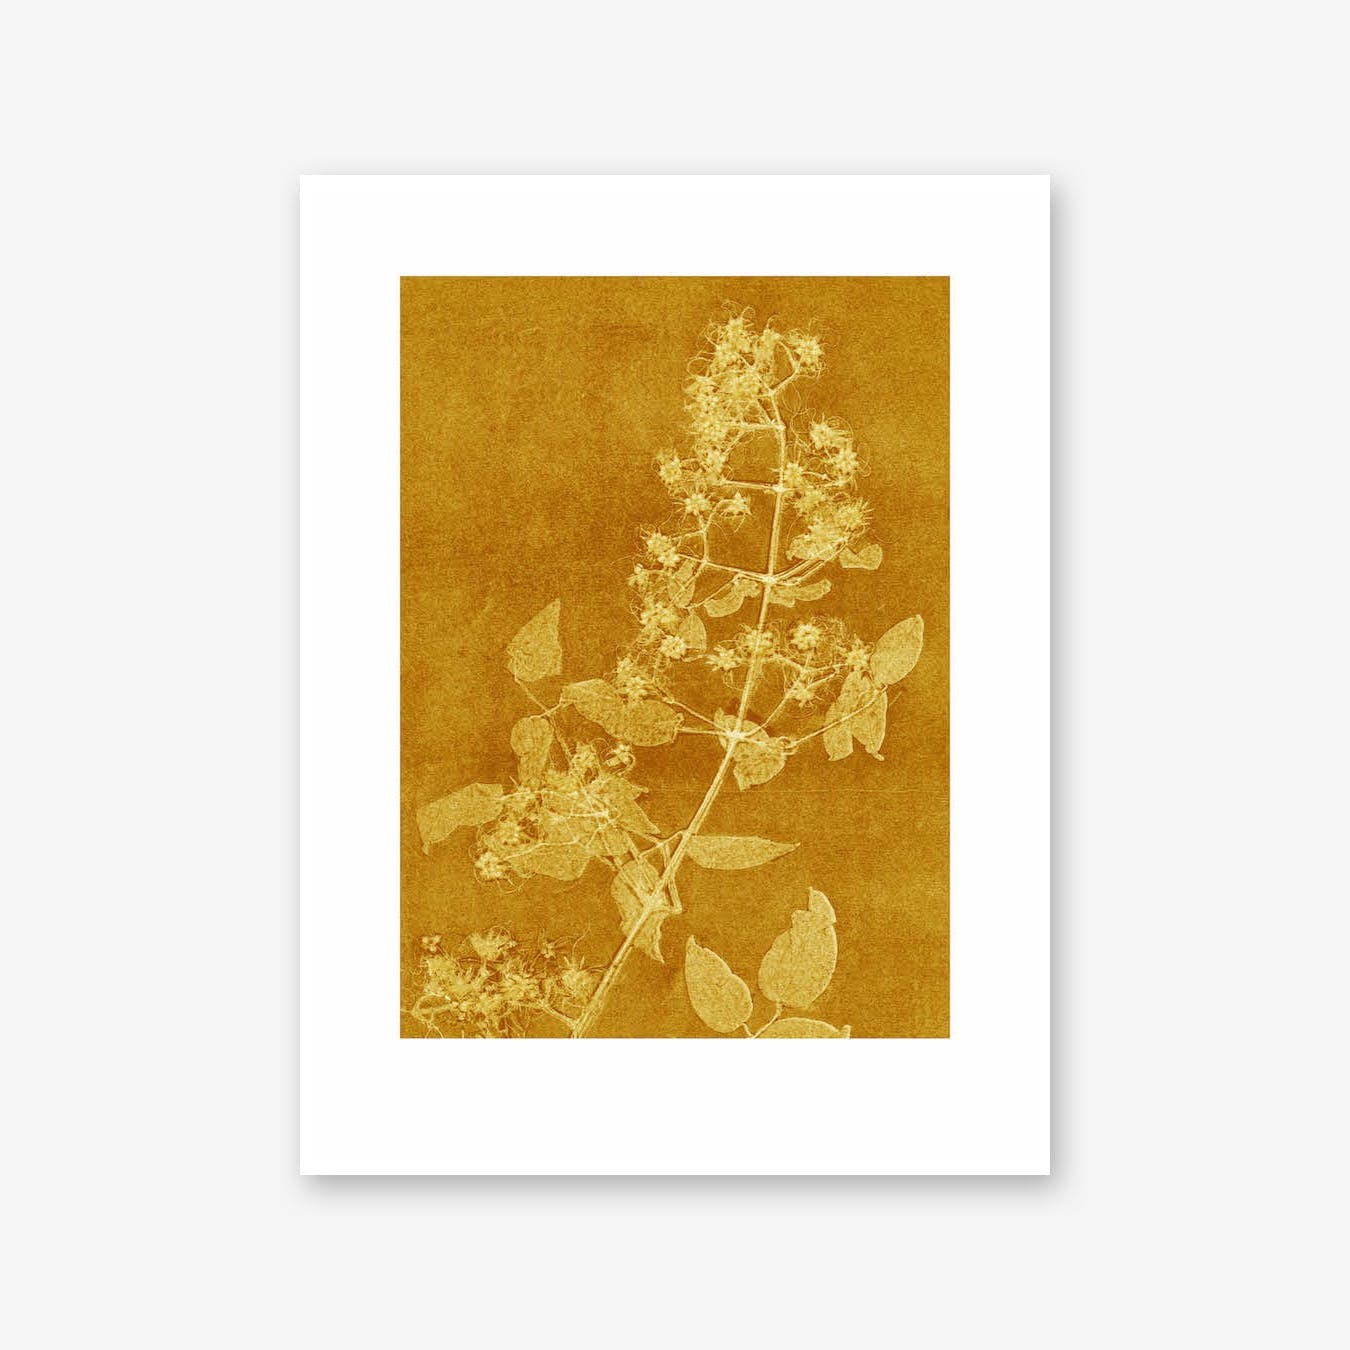 Clematis Curry Print In 30cm x 40cm